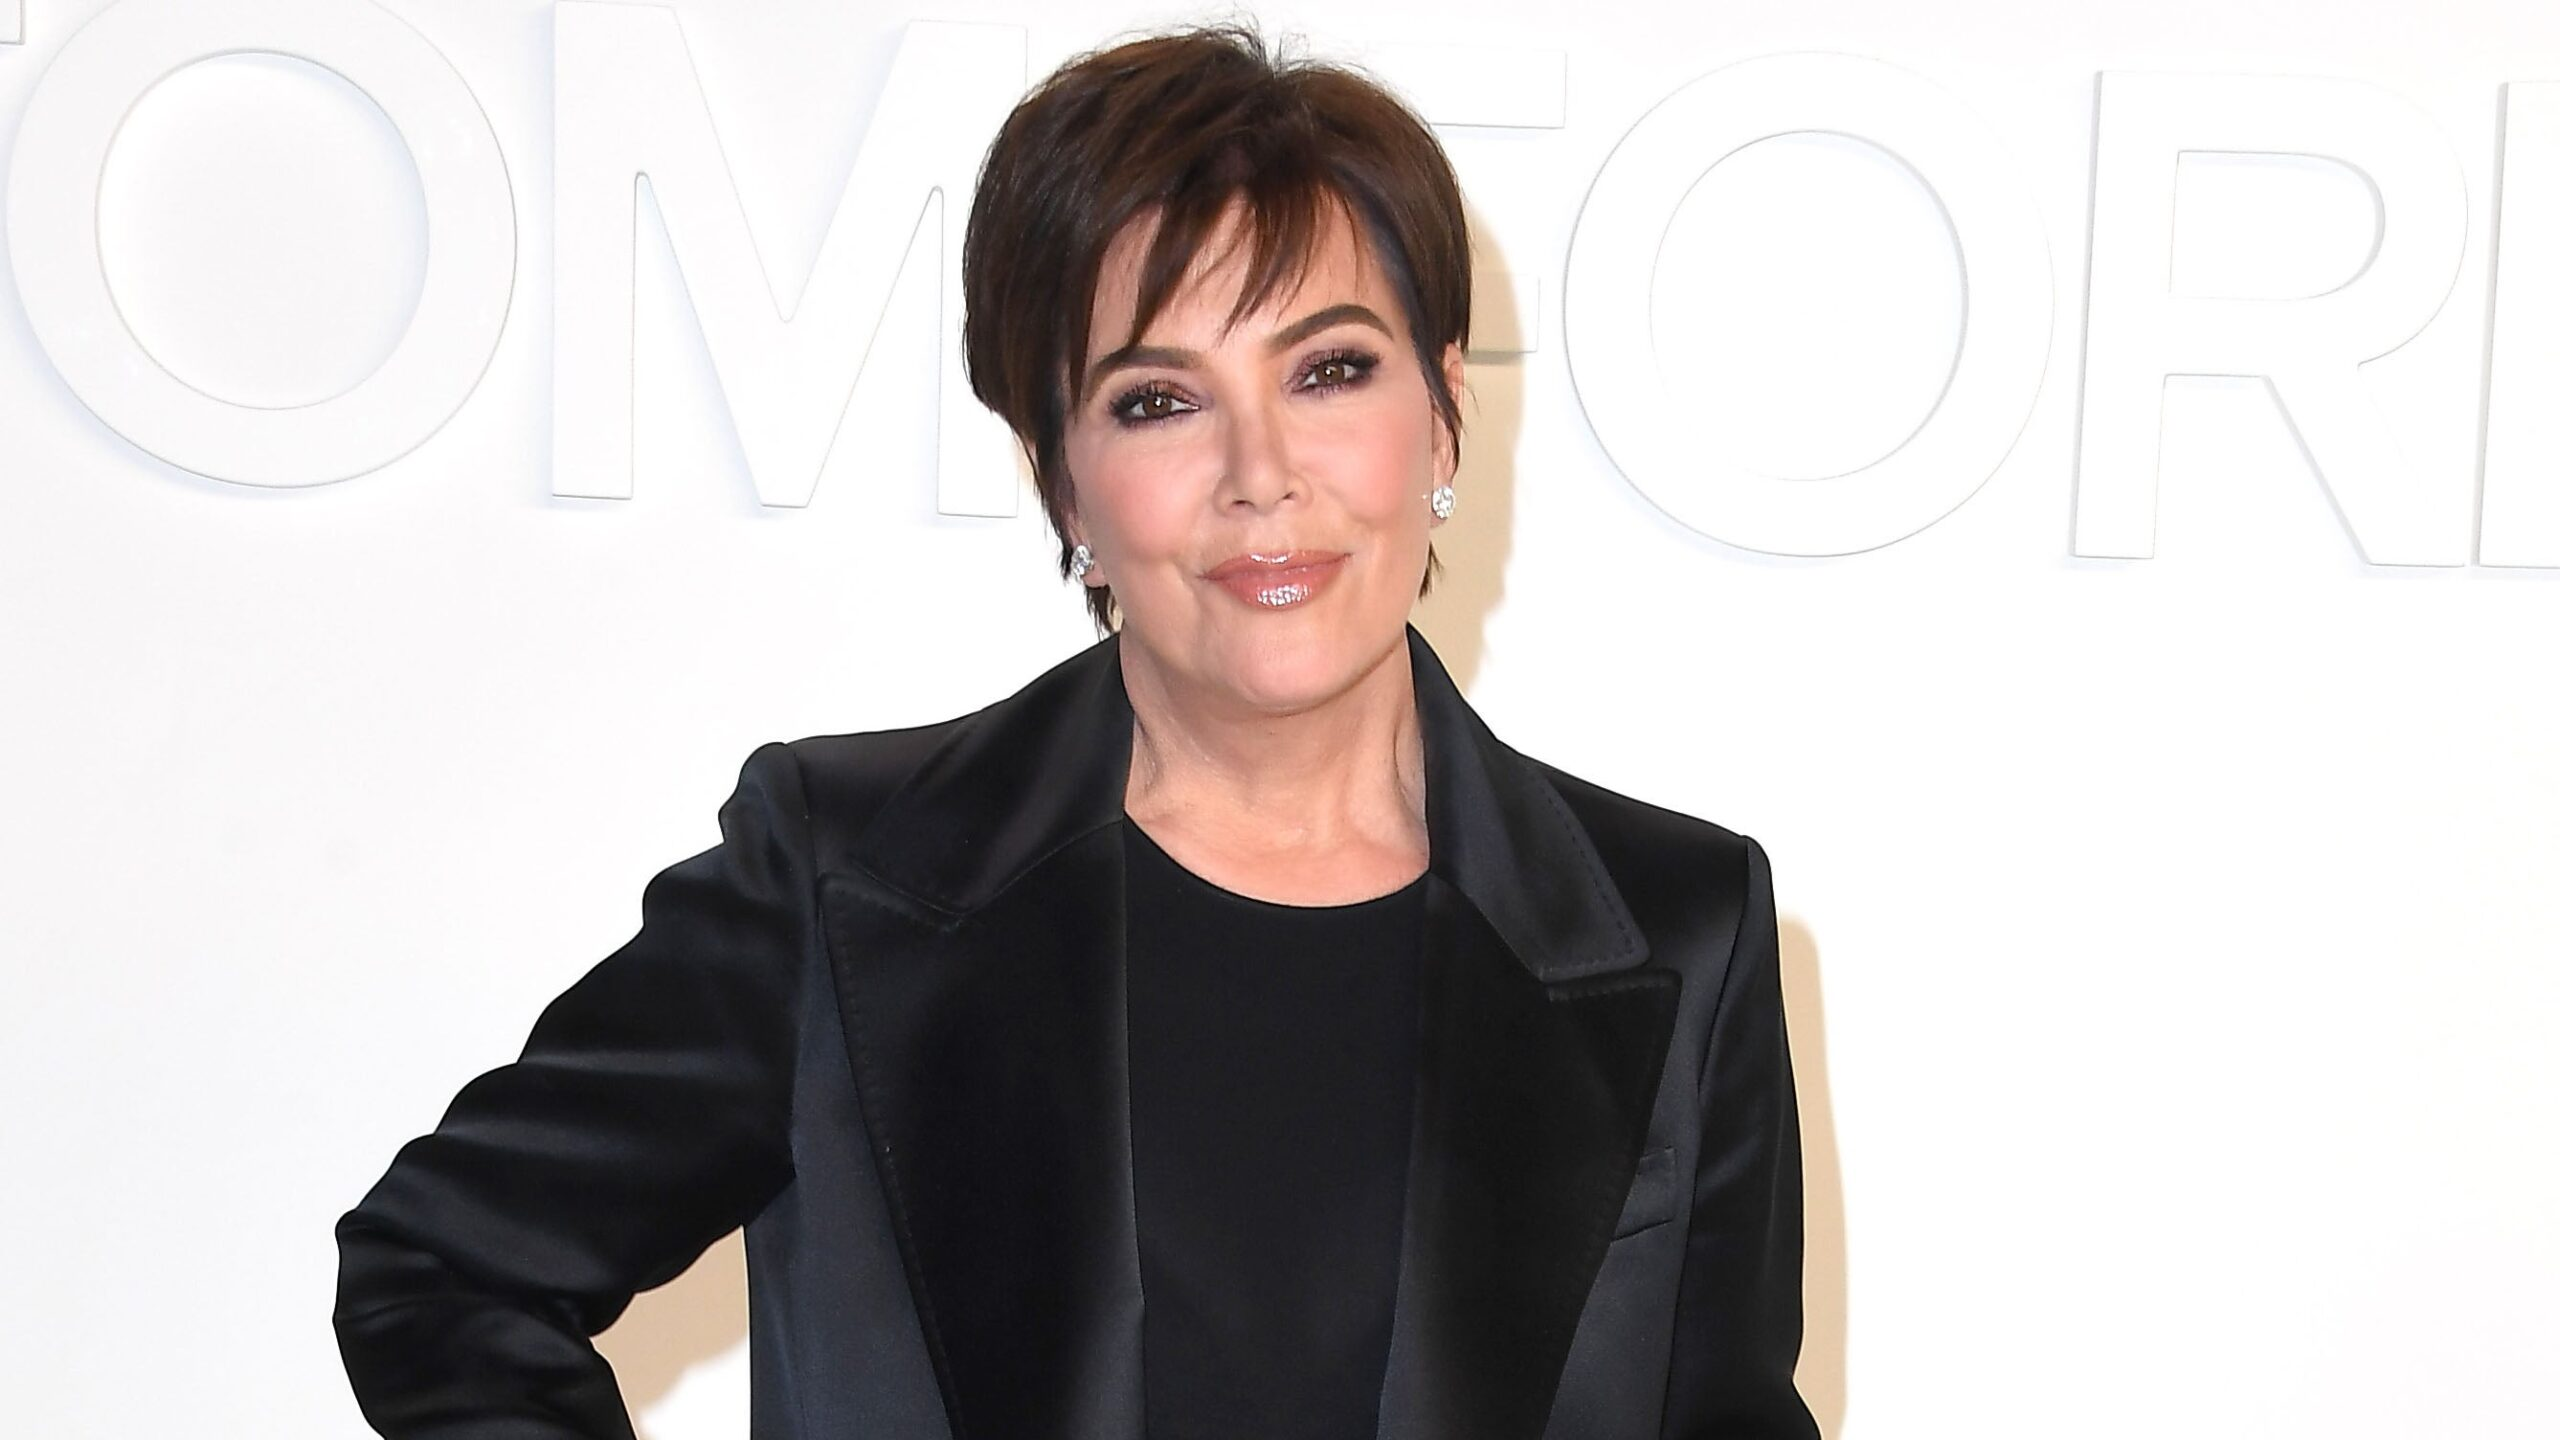 Finally spoke: Kris and Caitlyn Jenner commented on the divorce of Kim and Kanye, an interesting detail was revealed